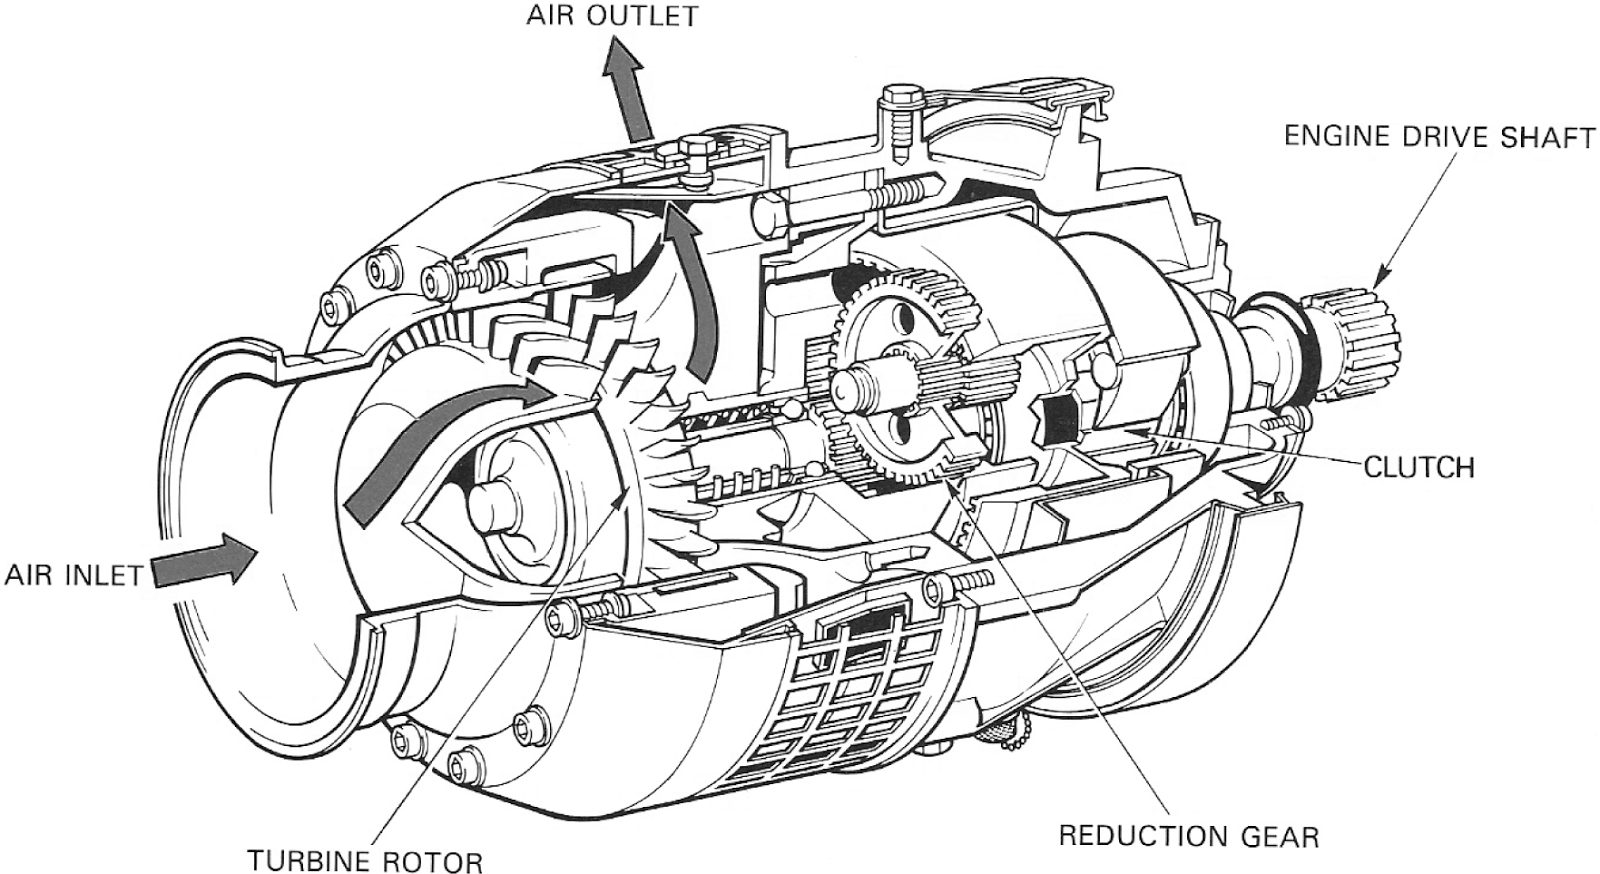 T700 Engine Cutaway Wiring Diagram And Fuse Box